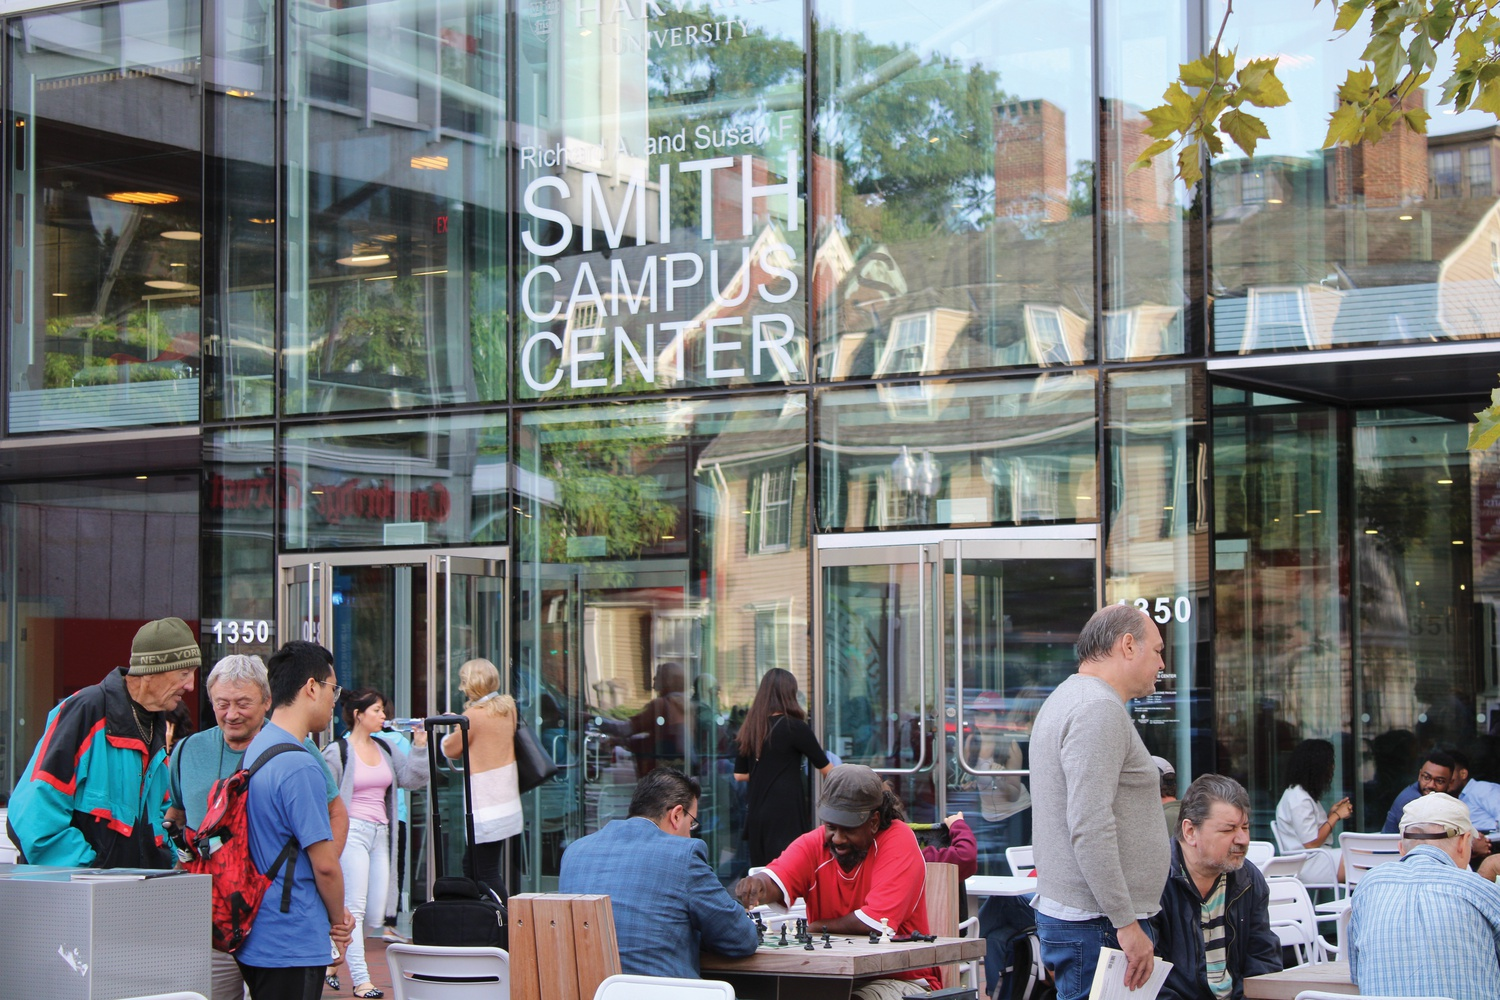 Police arrested a man in the Smith Campus Center shortly before noon on Thursday.